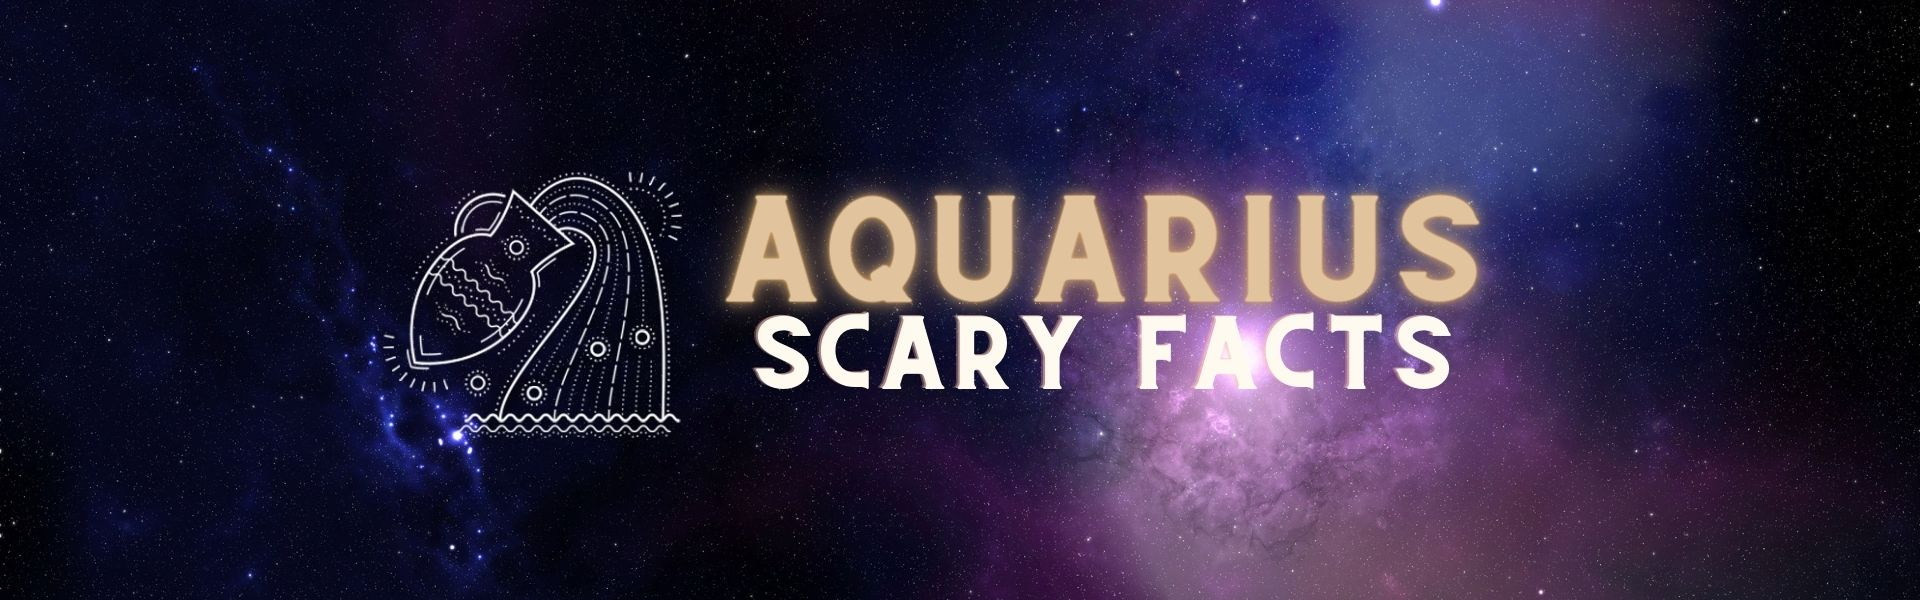 10 scary facts about Aquarius you didn't know about!